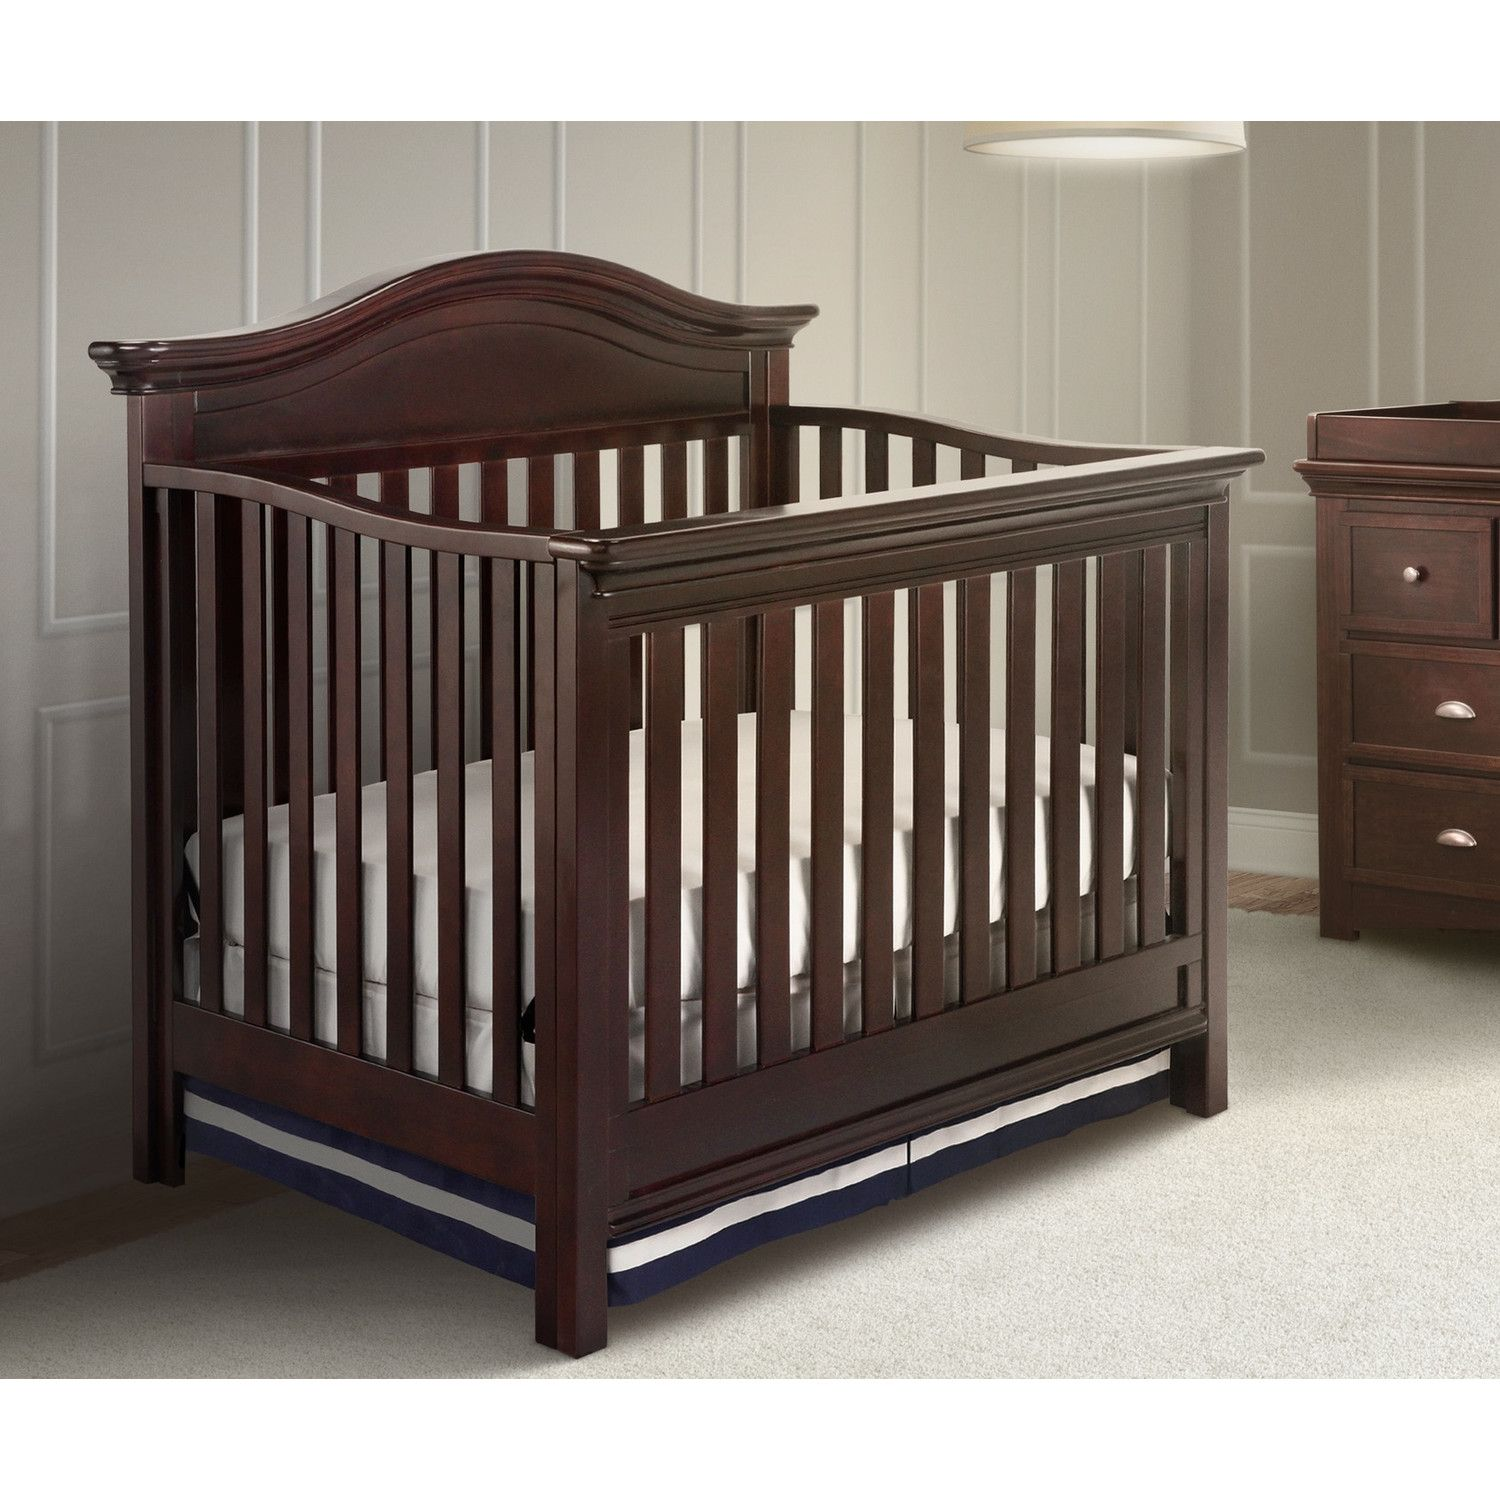 Oakland Crib Espresso 332313406 - In Store Only - Convertible